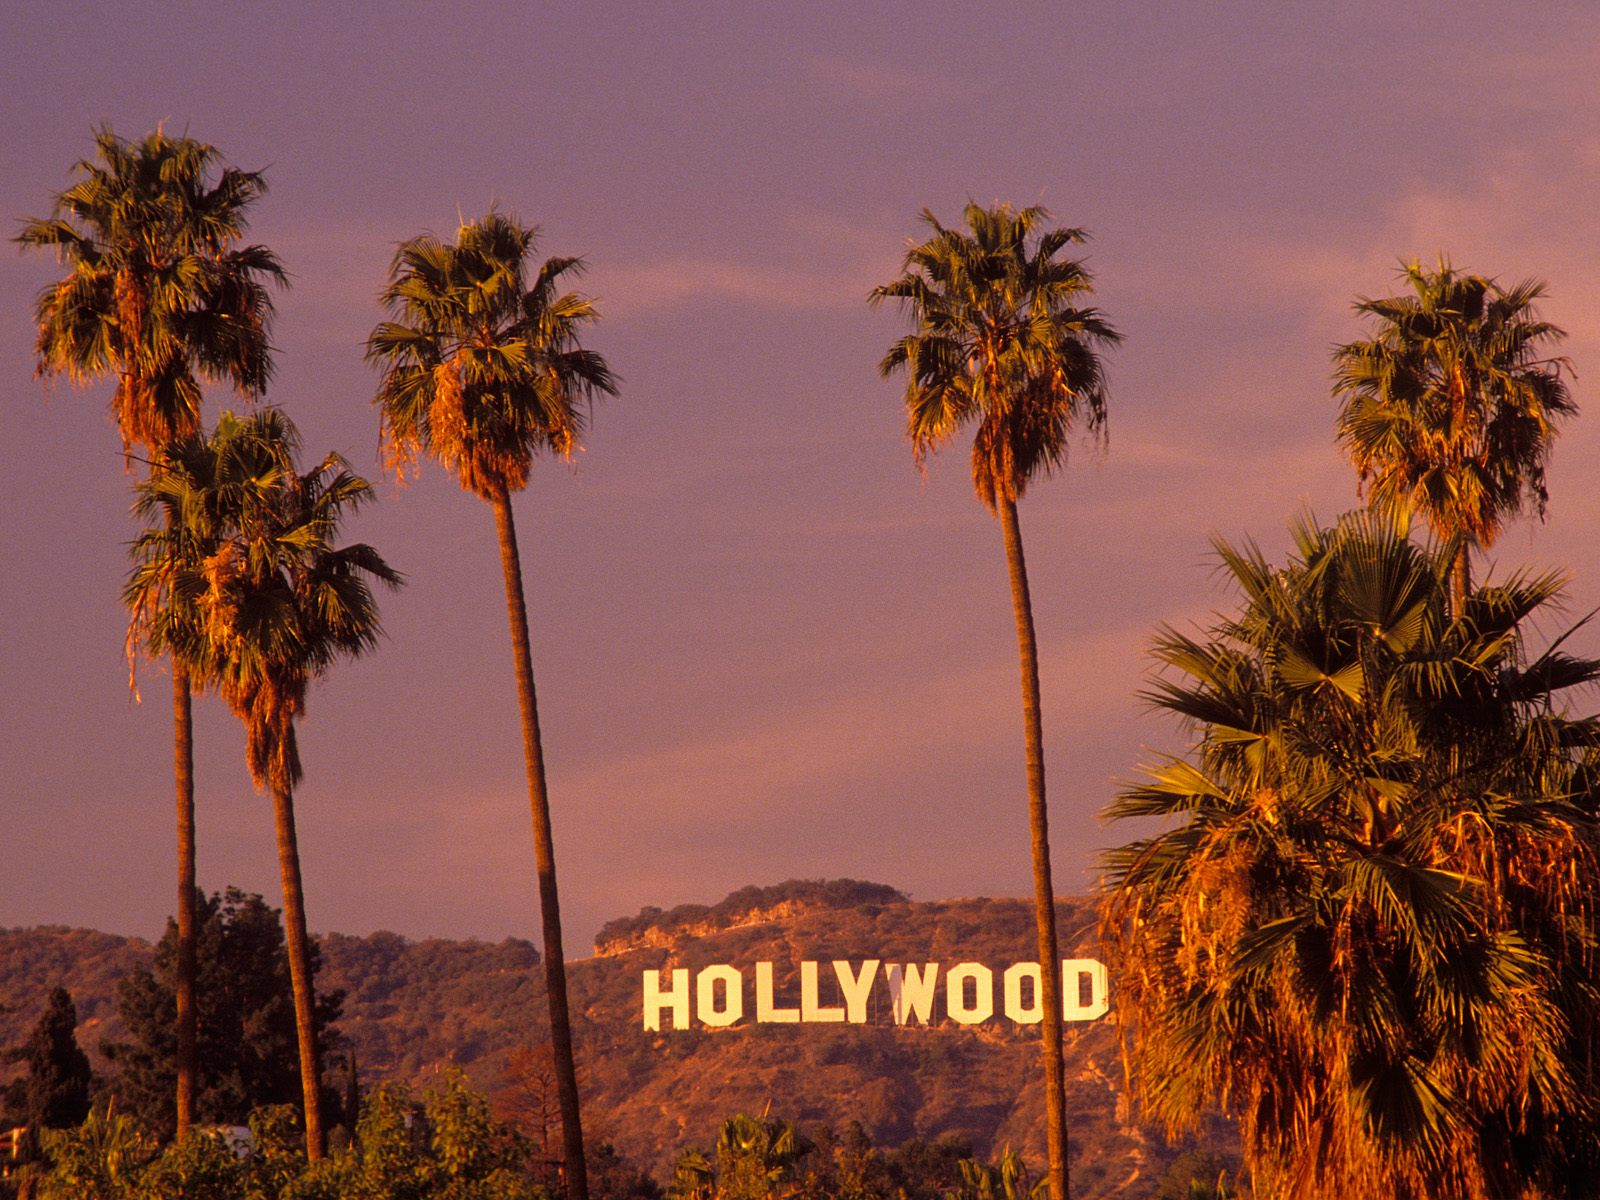 hollywood wallpaper,tree,sky,nature,palm tree,arecales (#101940) -  WallpaperUse